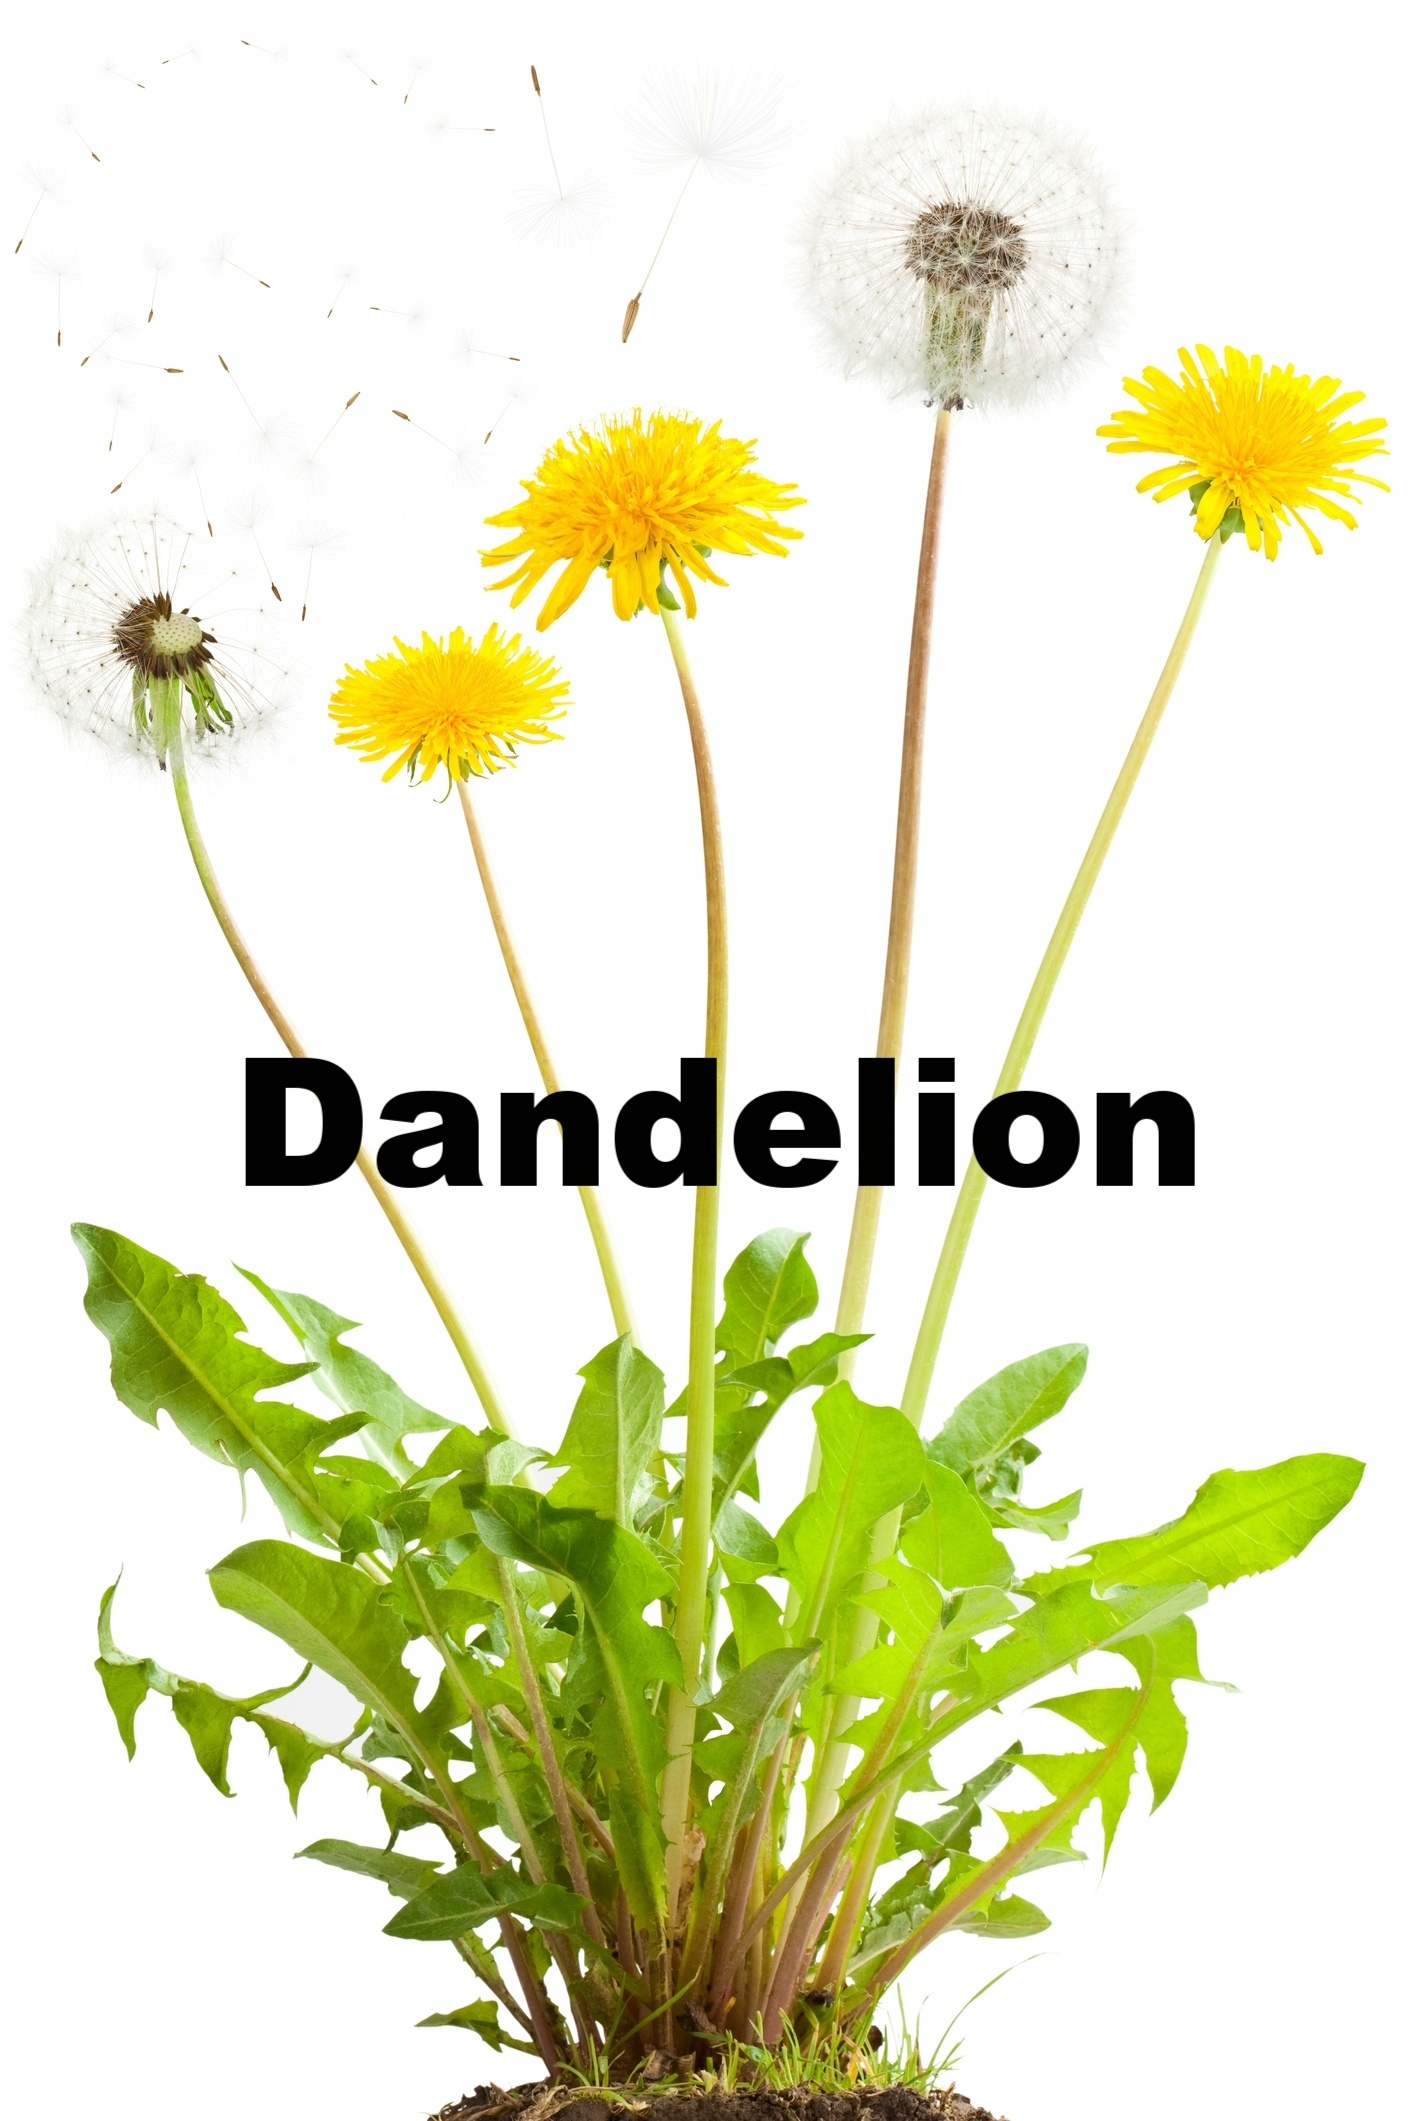 Dandelion-Identification-288401-edited.jpg